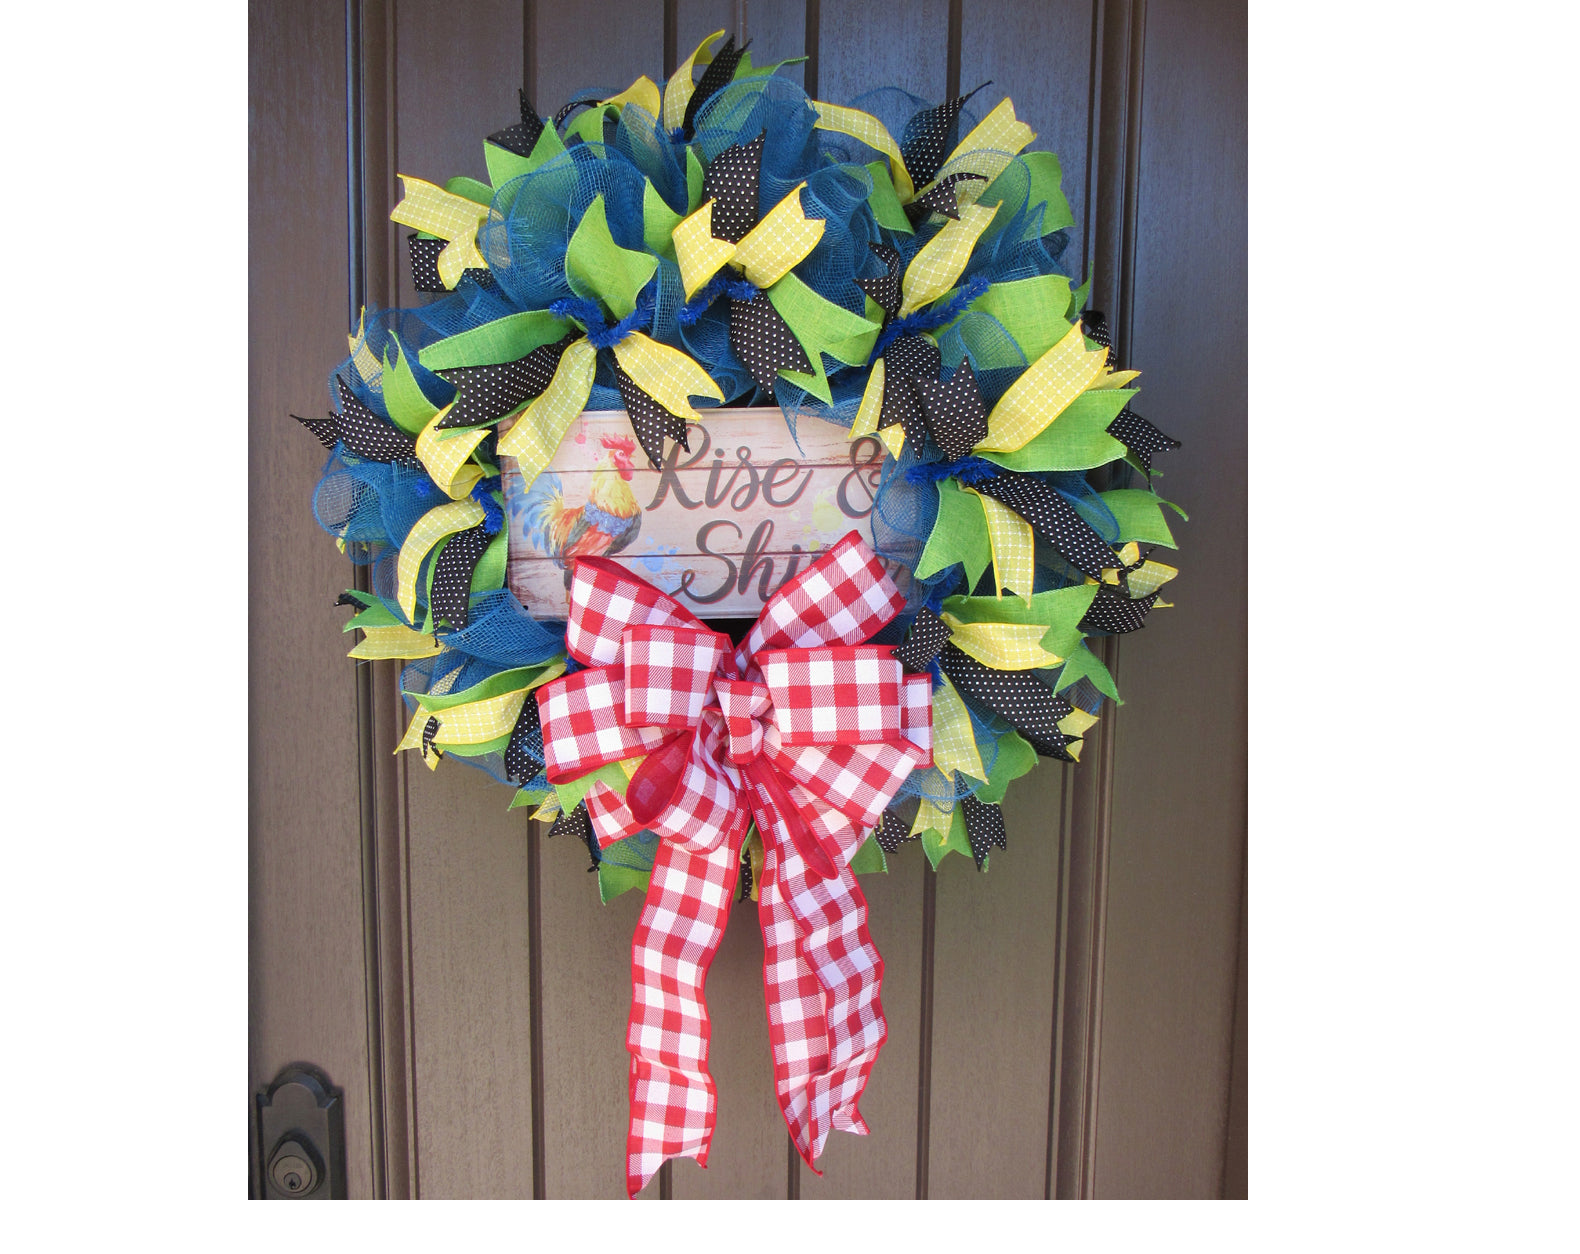 2018 Rise and Shine Wreath Tutorial